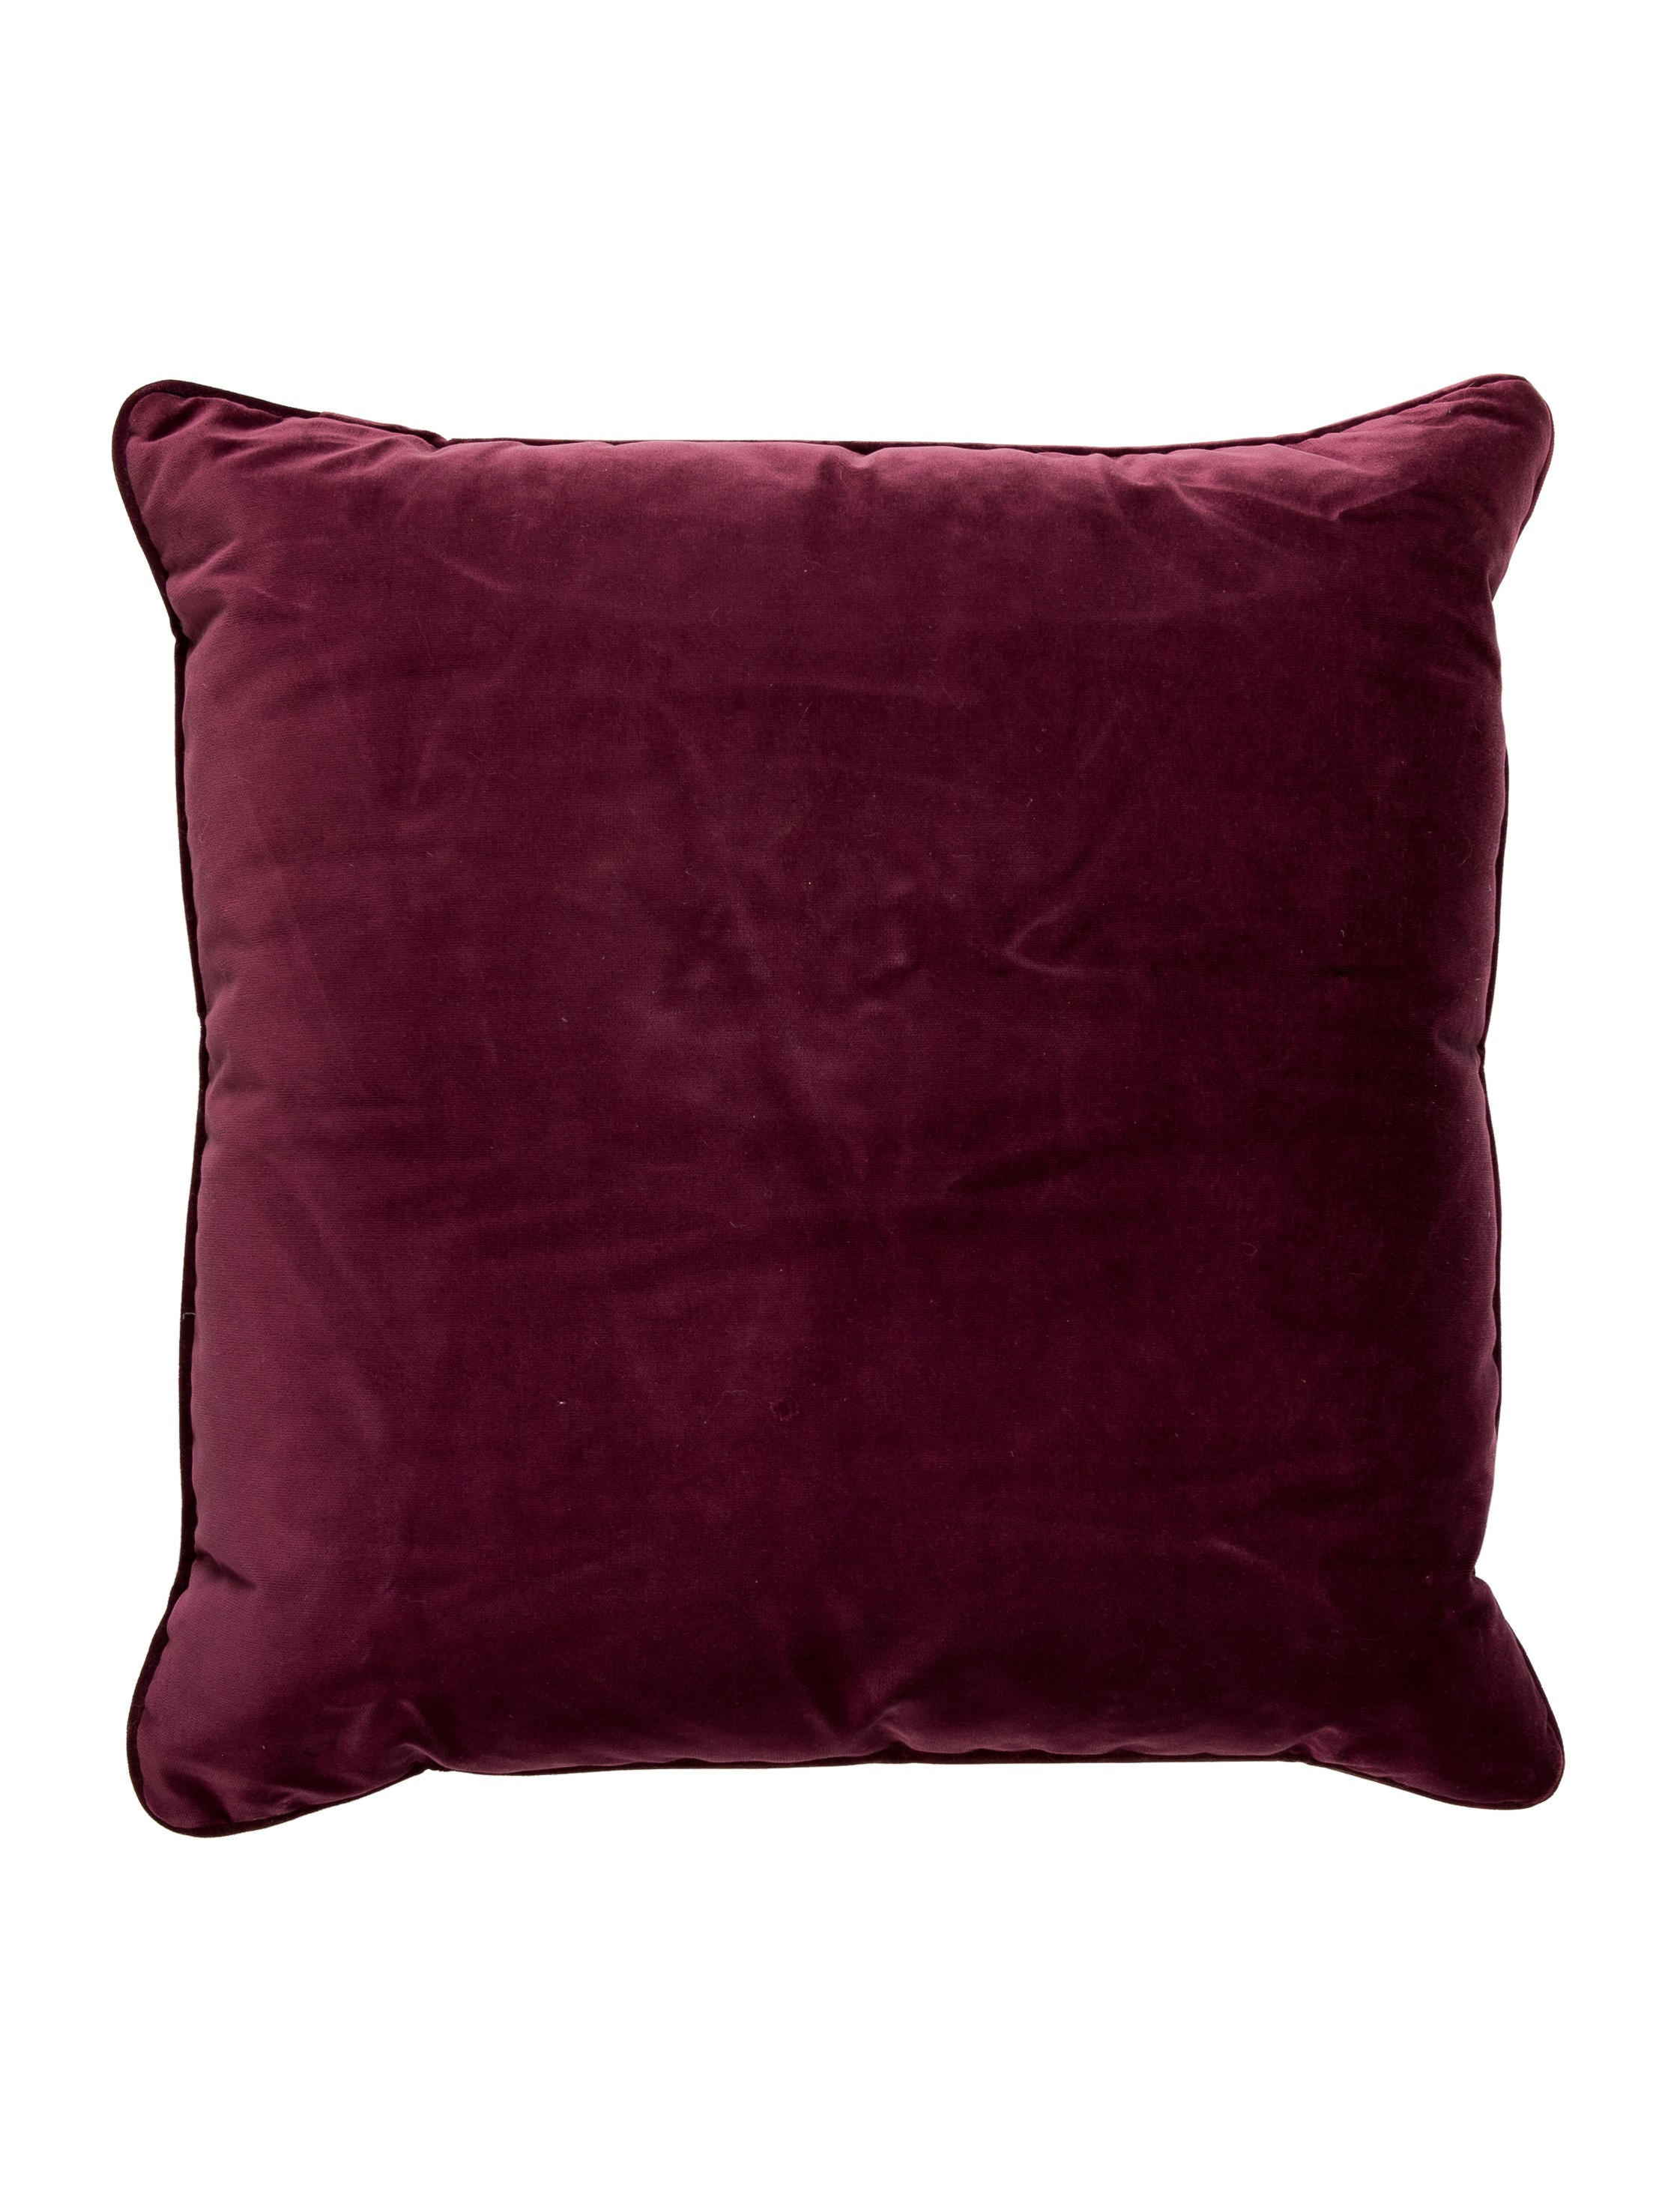 Jacquard Throw Pillows : Donghia Silk Jacquard Throw Pillow - Pillows And Throws - DONNH20007 The RealReal